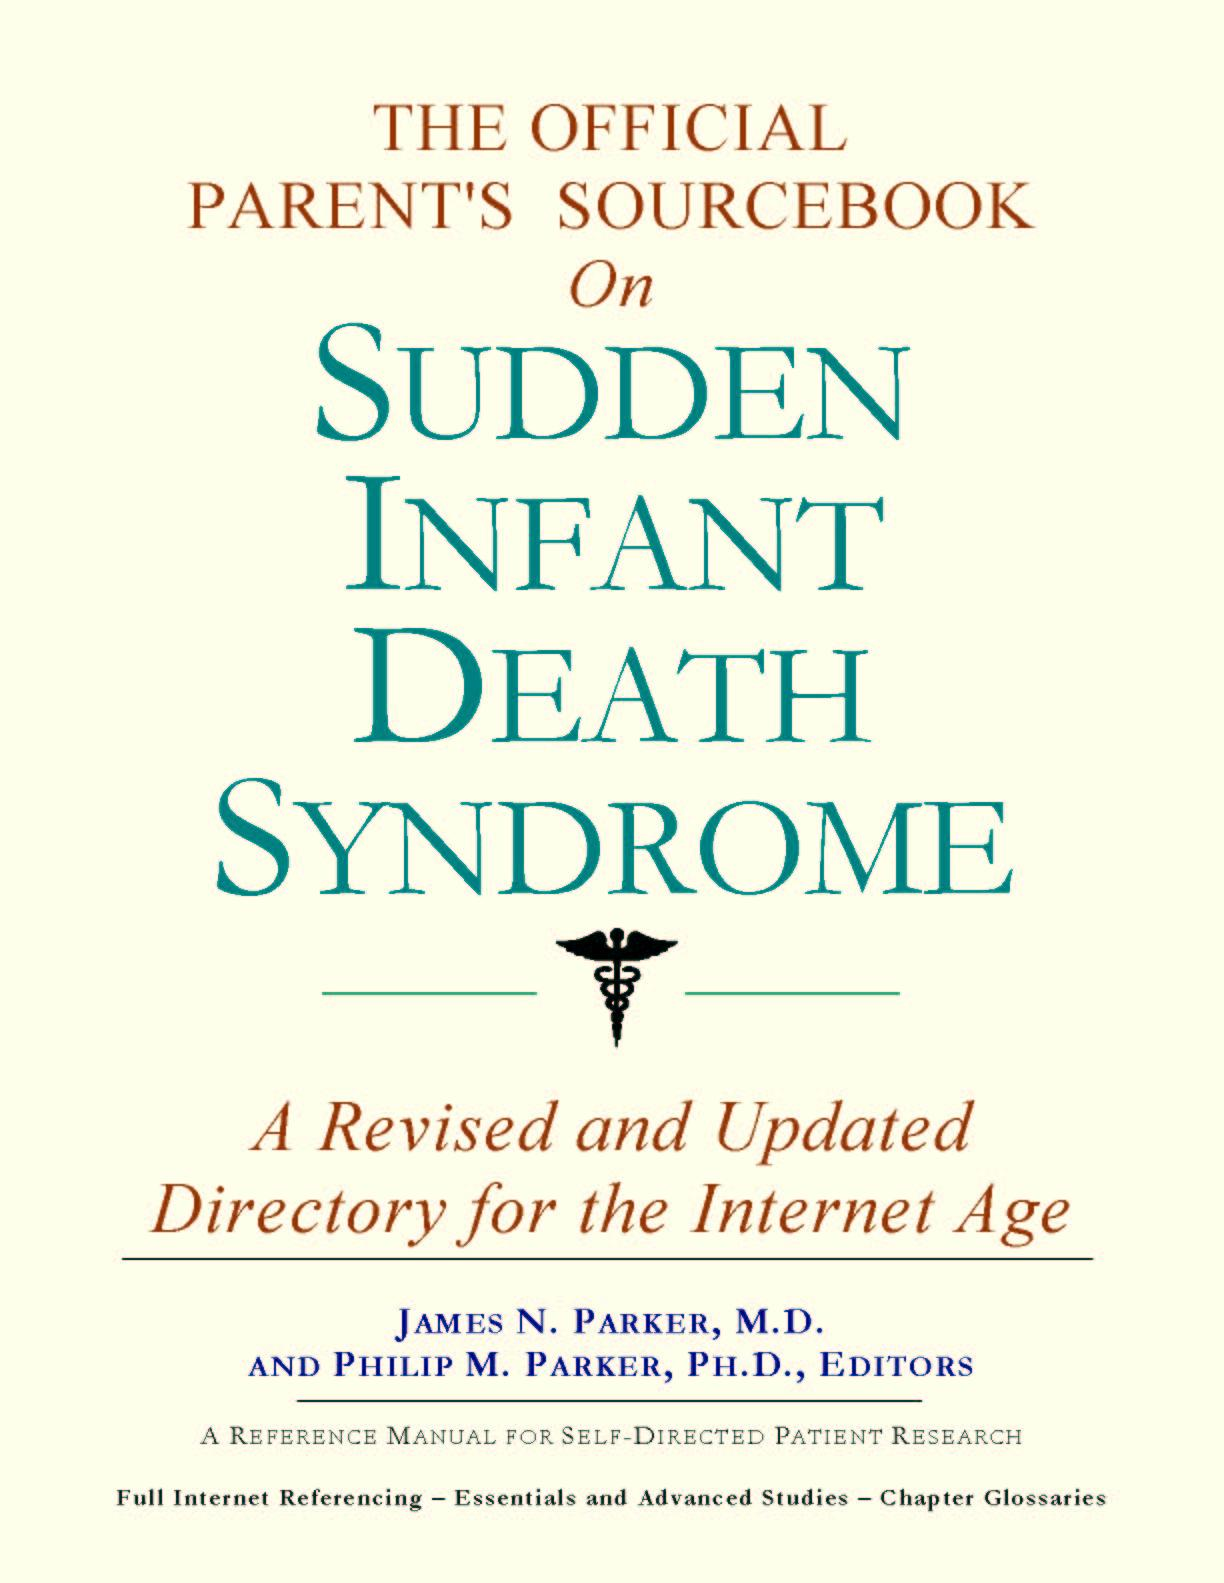 an introduction to the issue of sudden infant death syndrome sids Introduction sudden infant death syndrome (sids) is defined as the death of an infant that cannot be explained, despite a thorough case investigation, including death scene investigation, autopsy and review of the clinical history [.